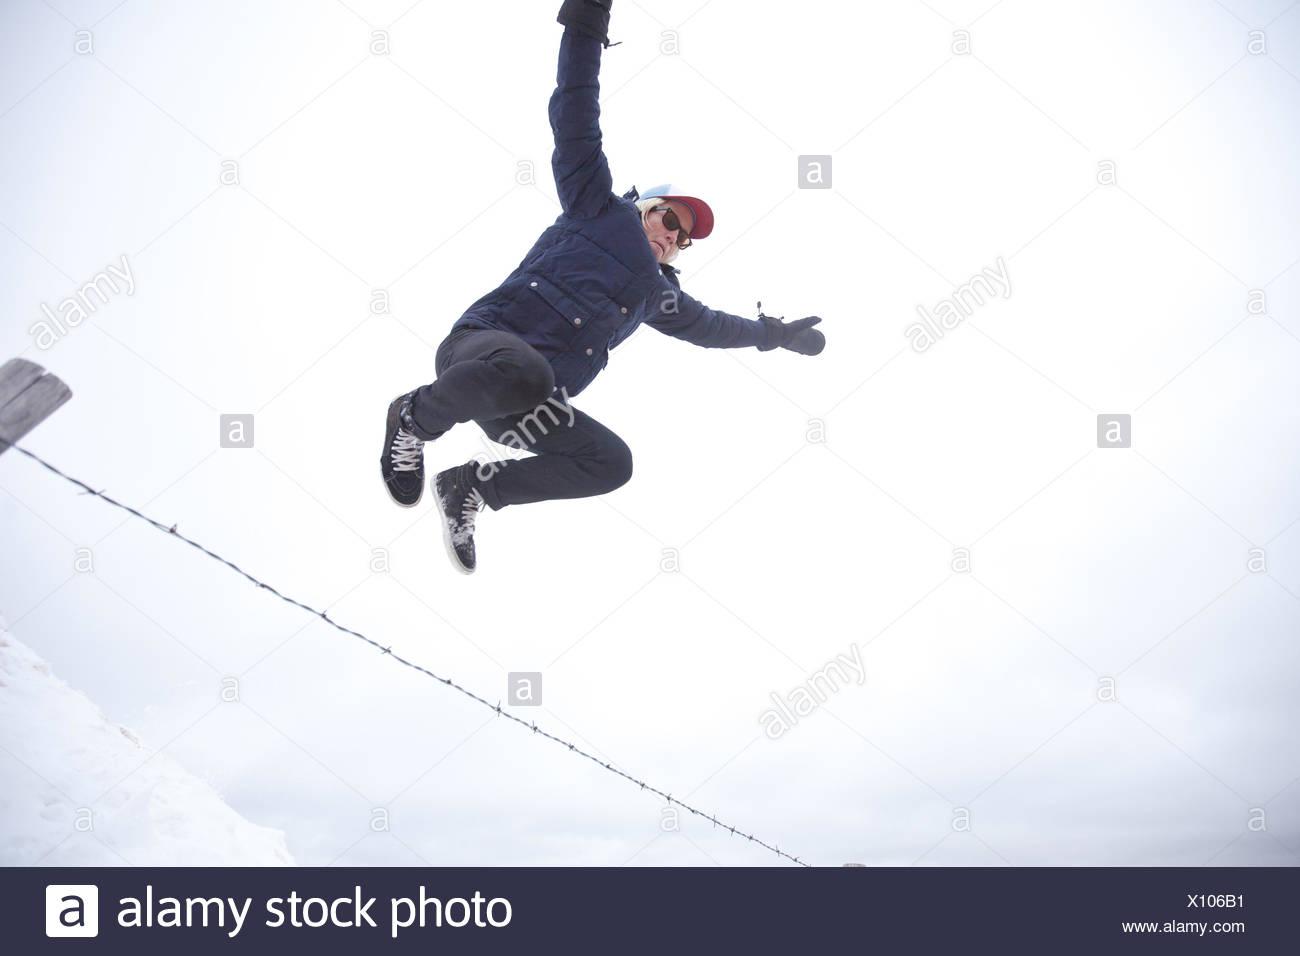 Low angle view of a young man jumping over fence Photo Stock